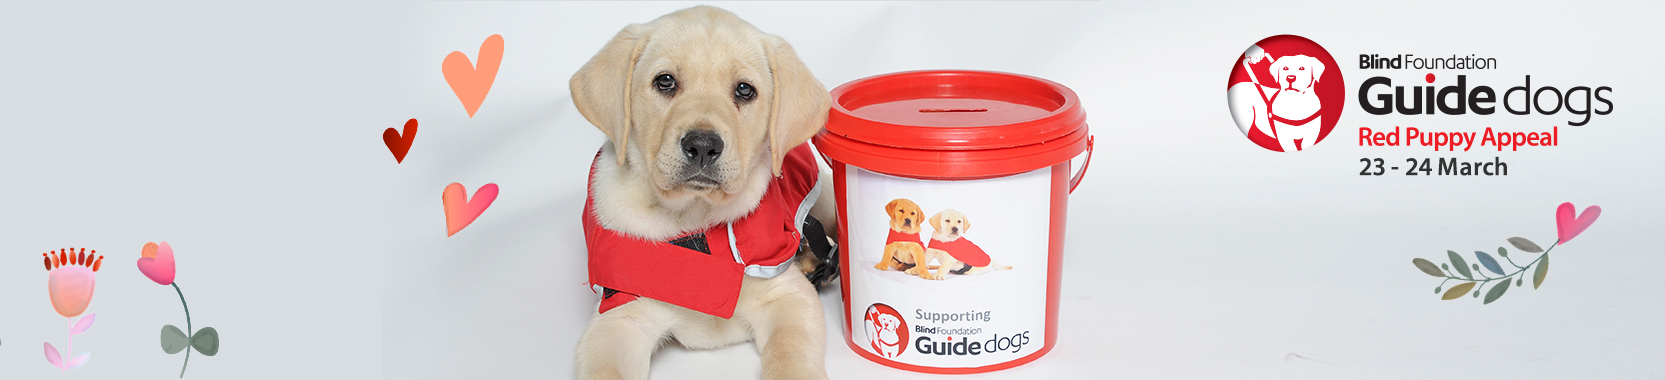 Guide dog puppy Yates sitting next to a collection bucket